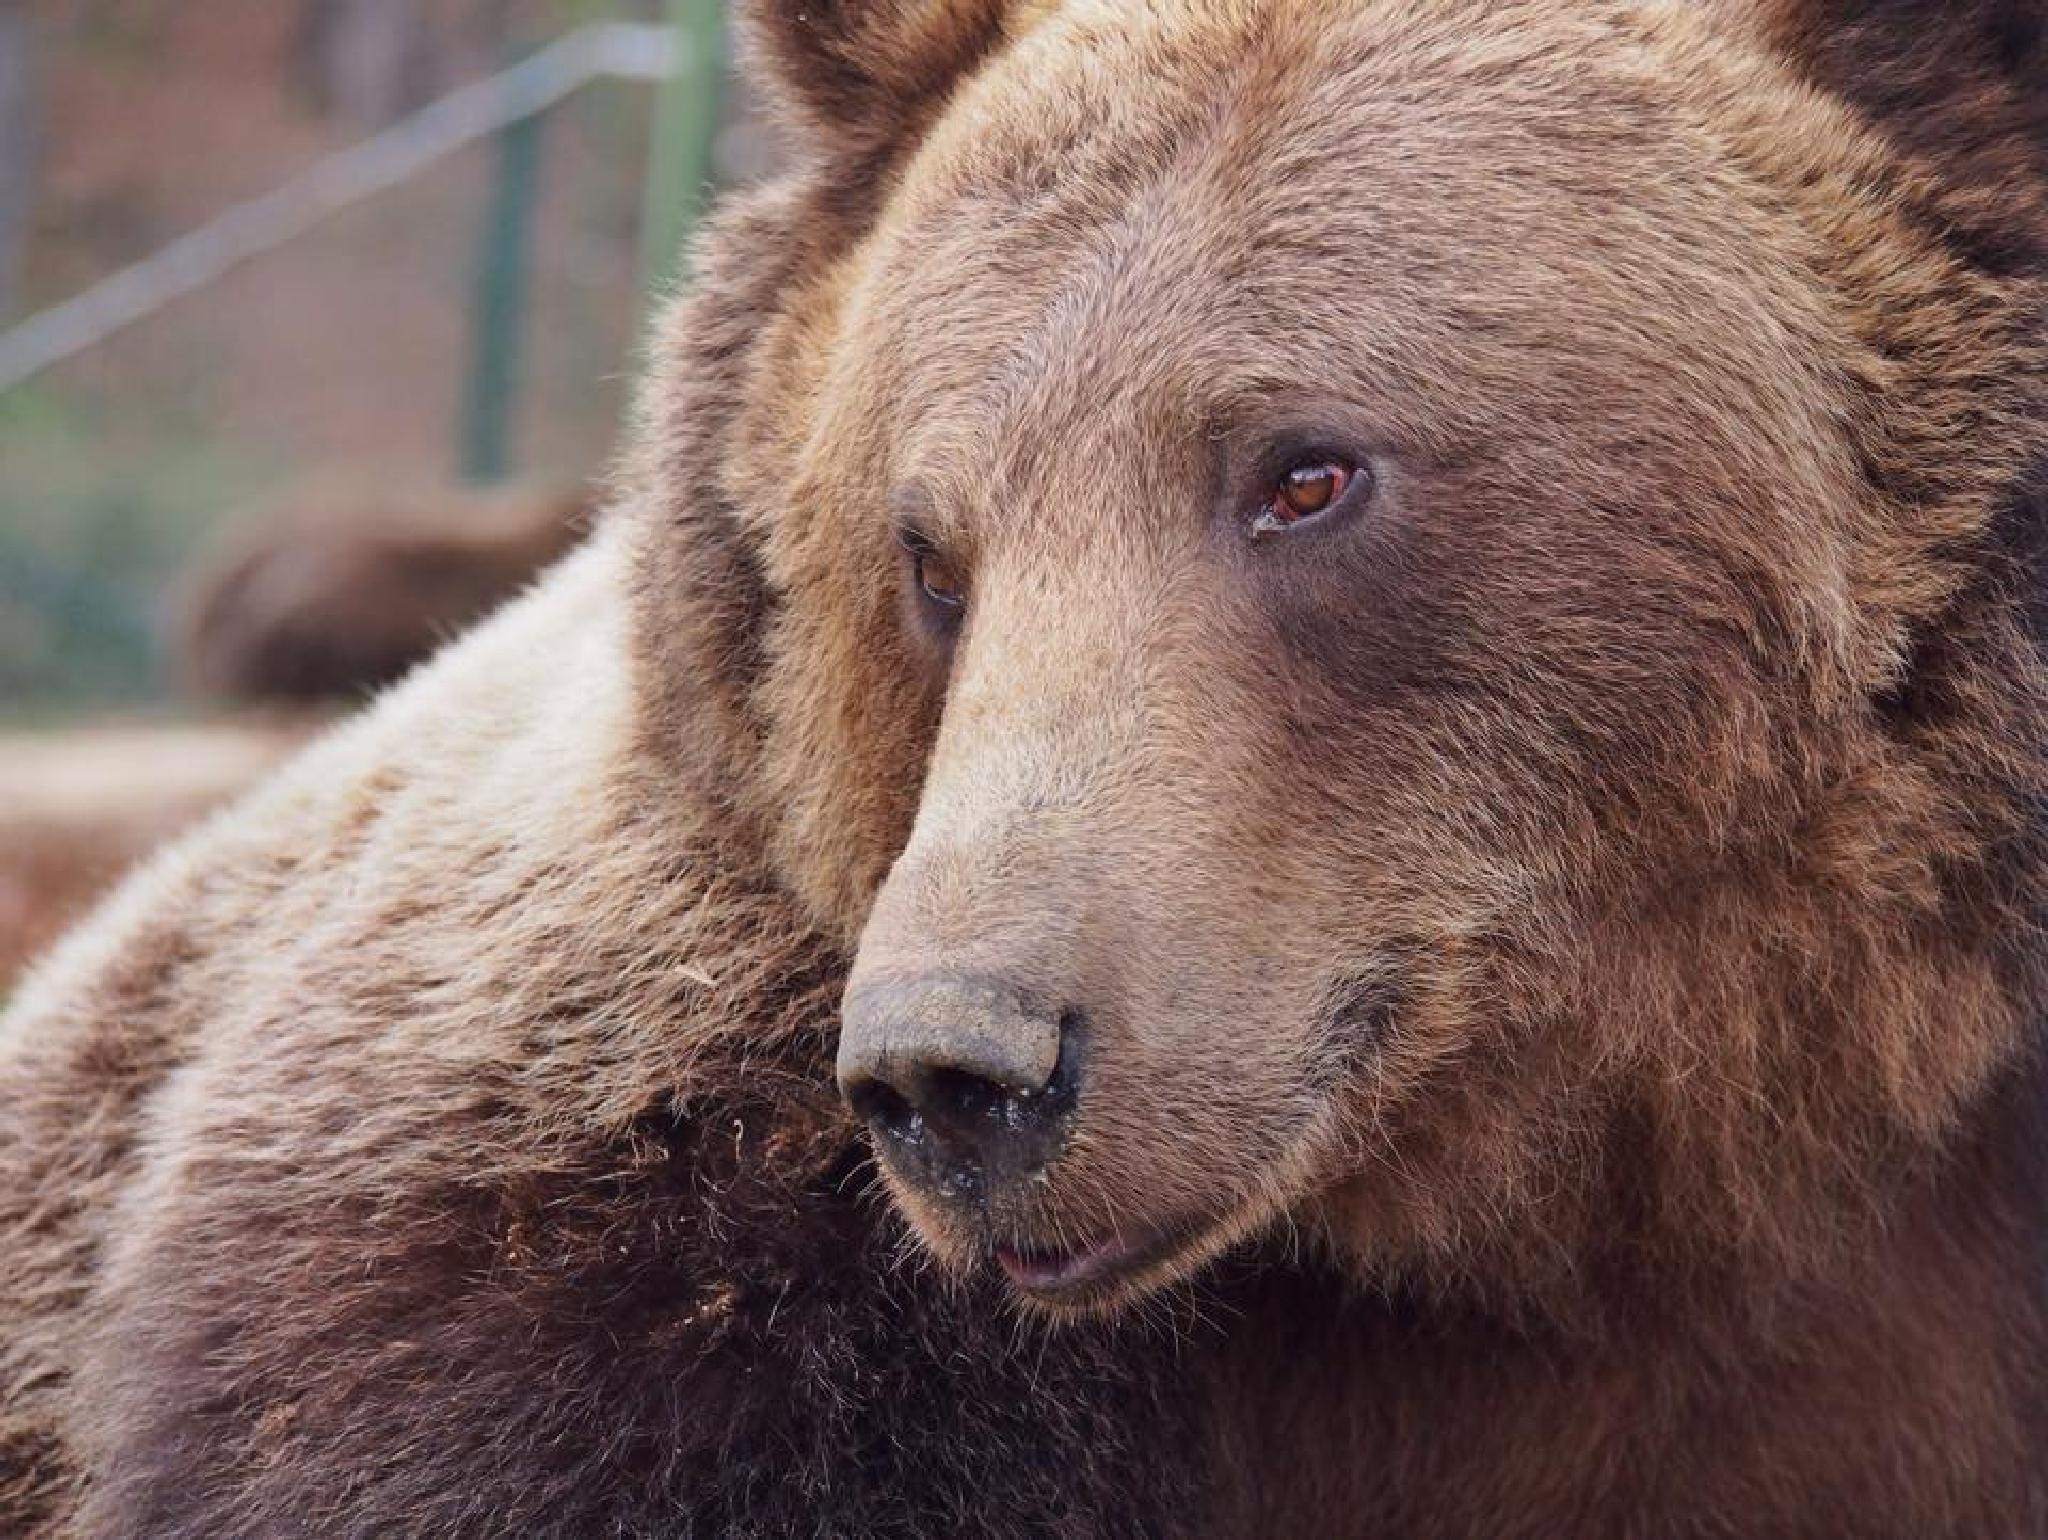 Brown Bear in Captivity  by liamrperkins